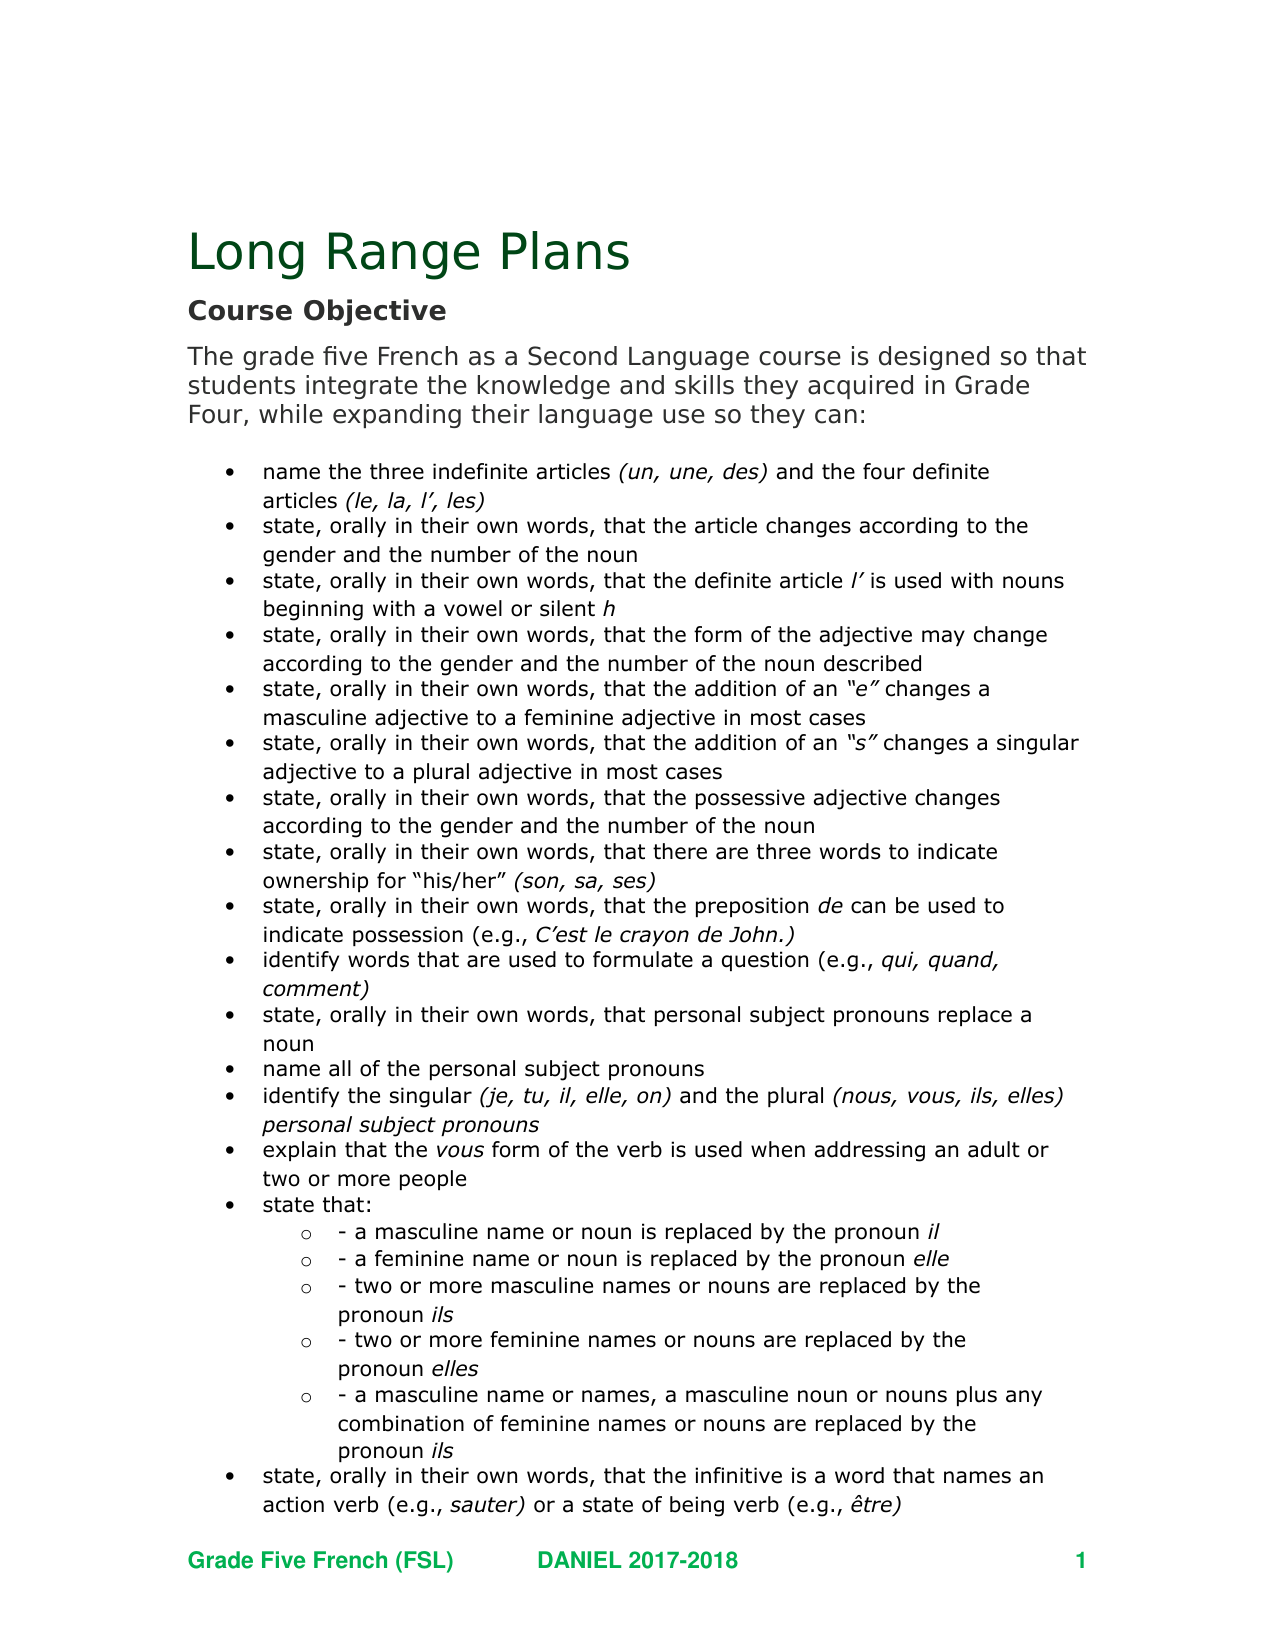 FSL 5 Long Range Plans Resource Preview